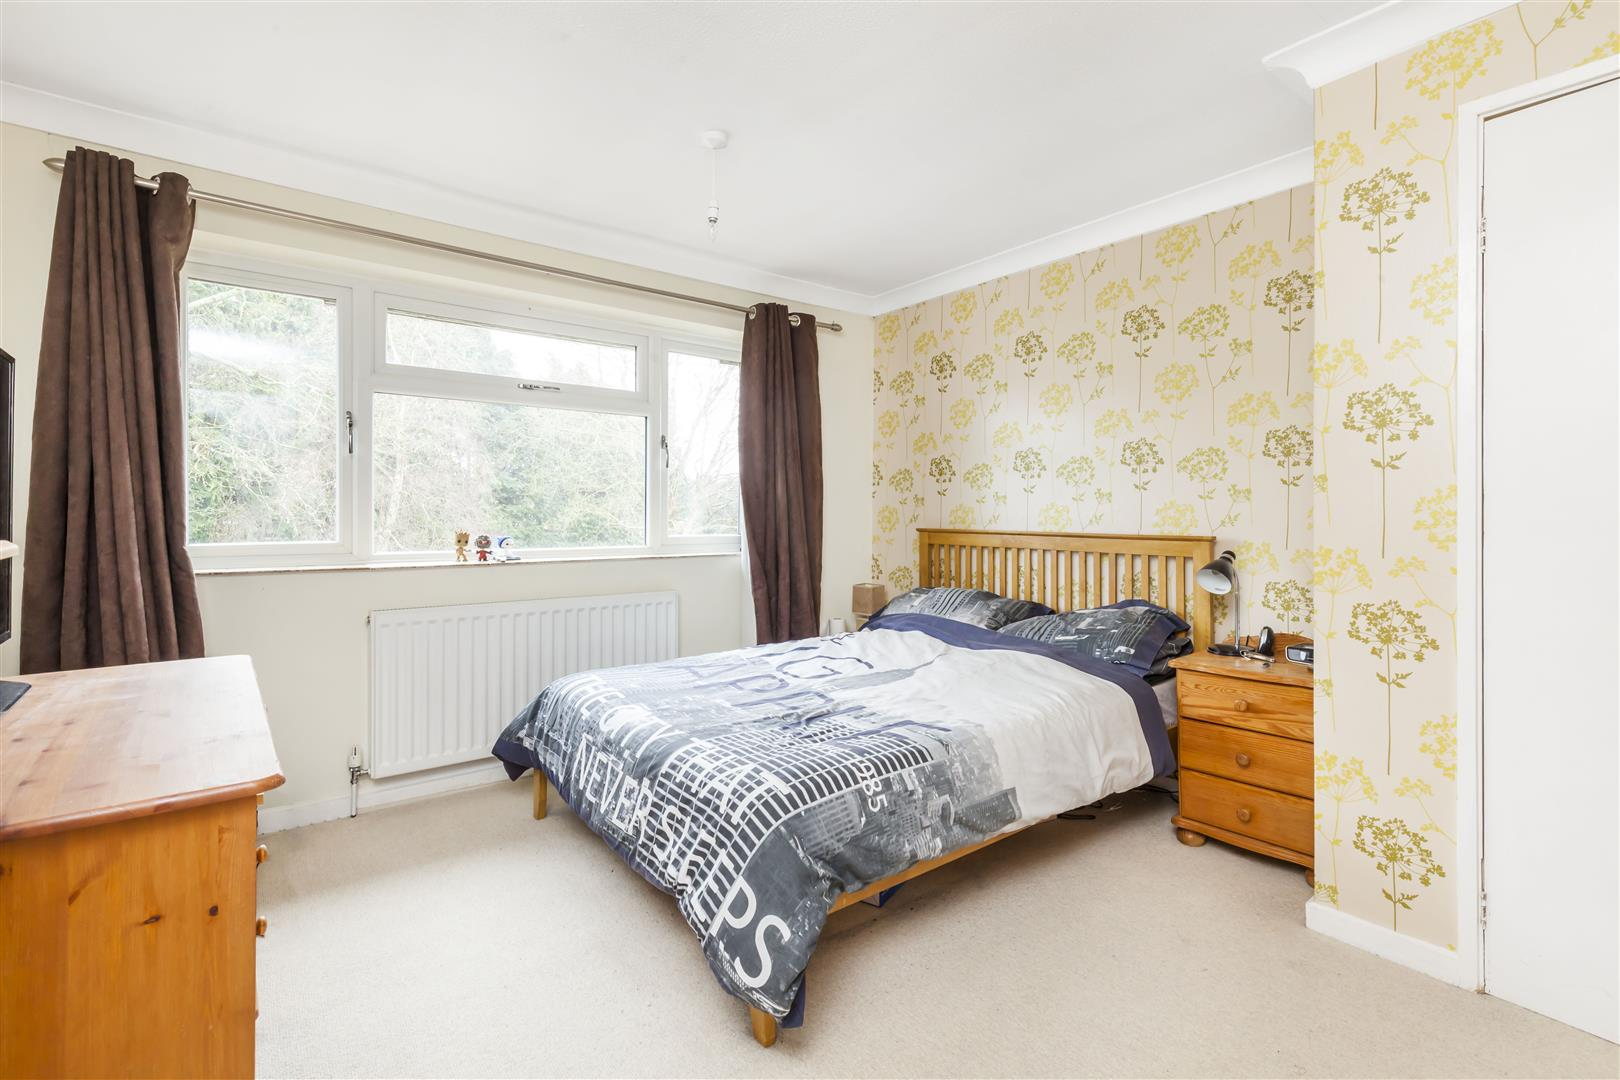 3 bed terraced-house for sale in Furnace Drive, Crawley  - Property Image 10